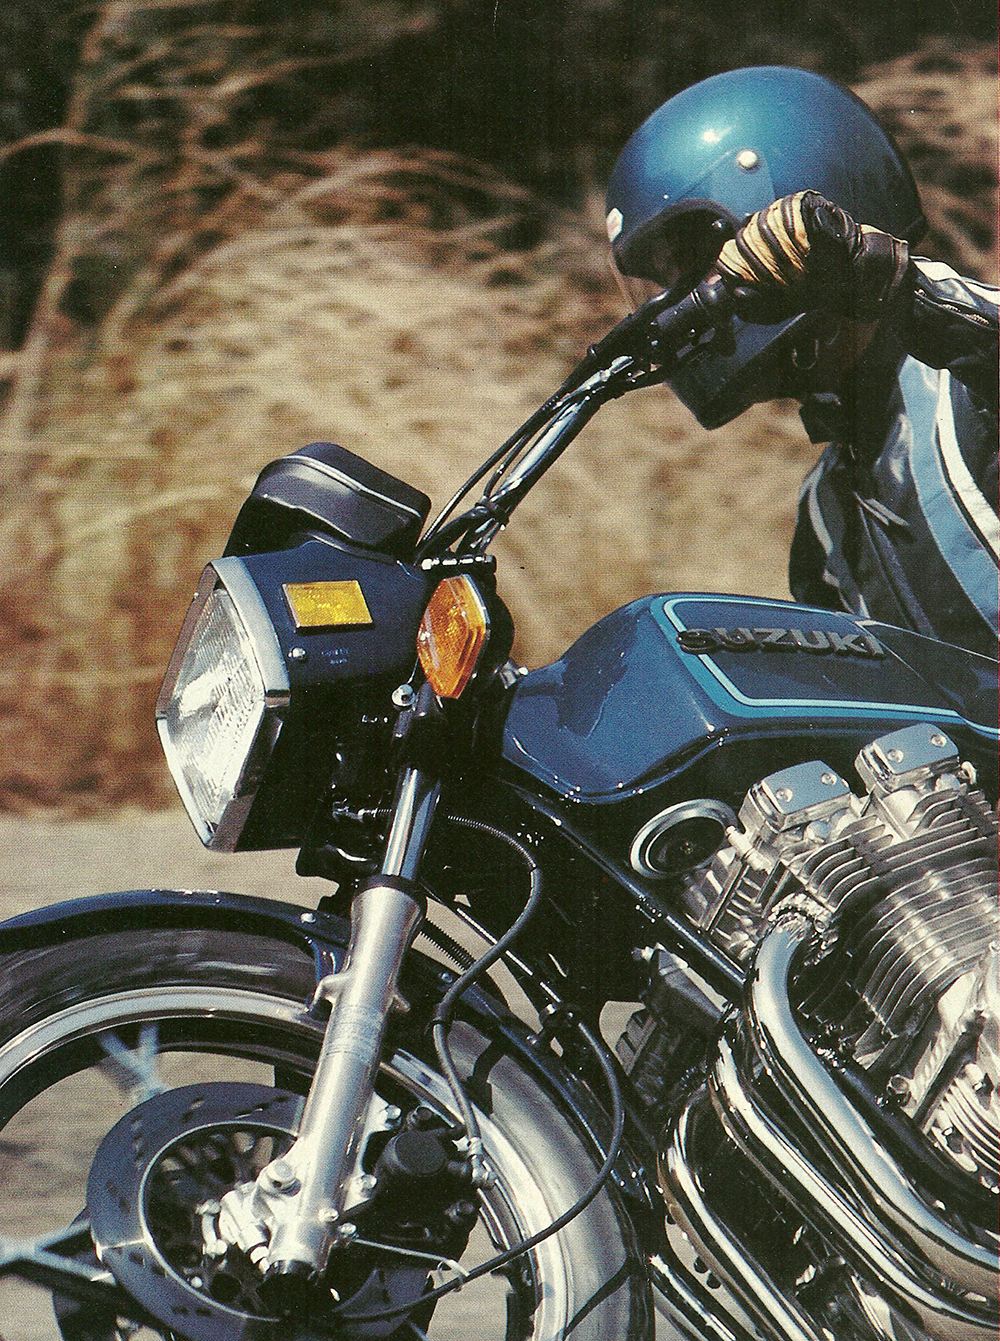 1980 Suzuki GS1100EX road test 01.jpg